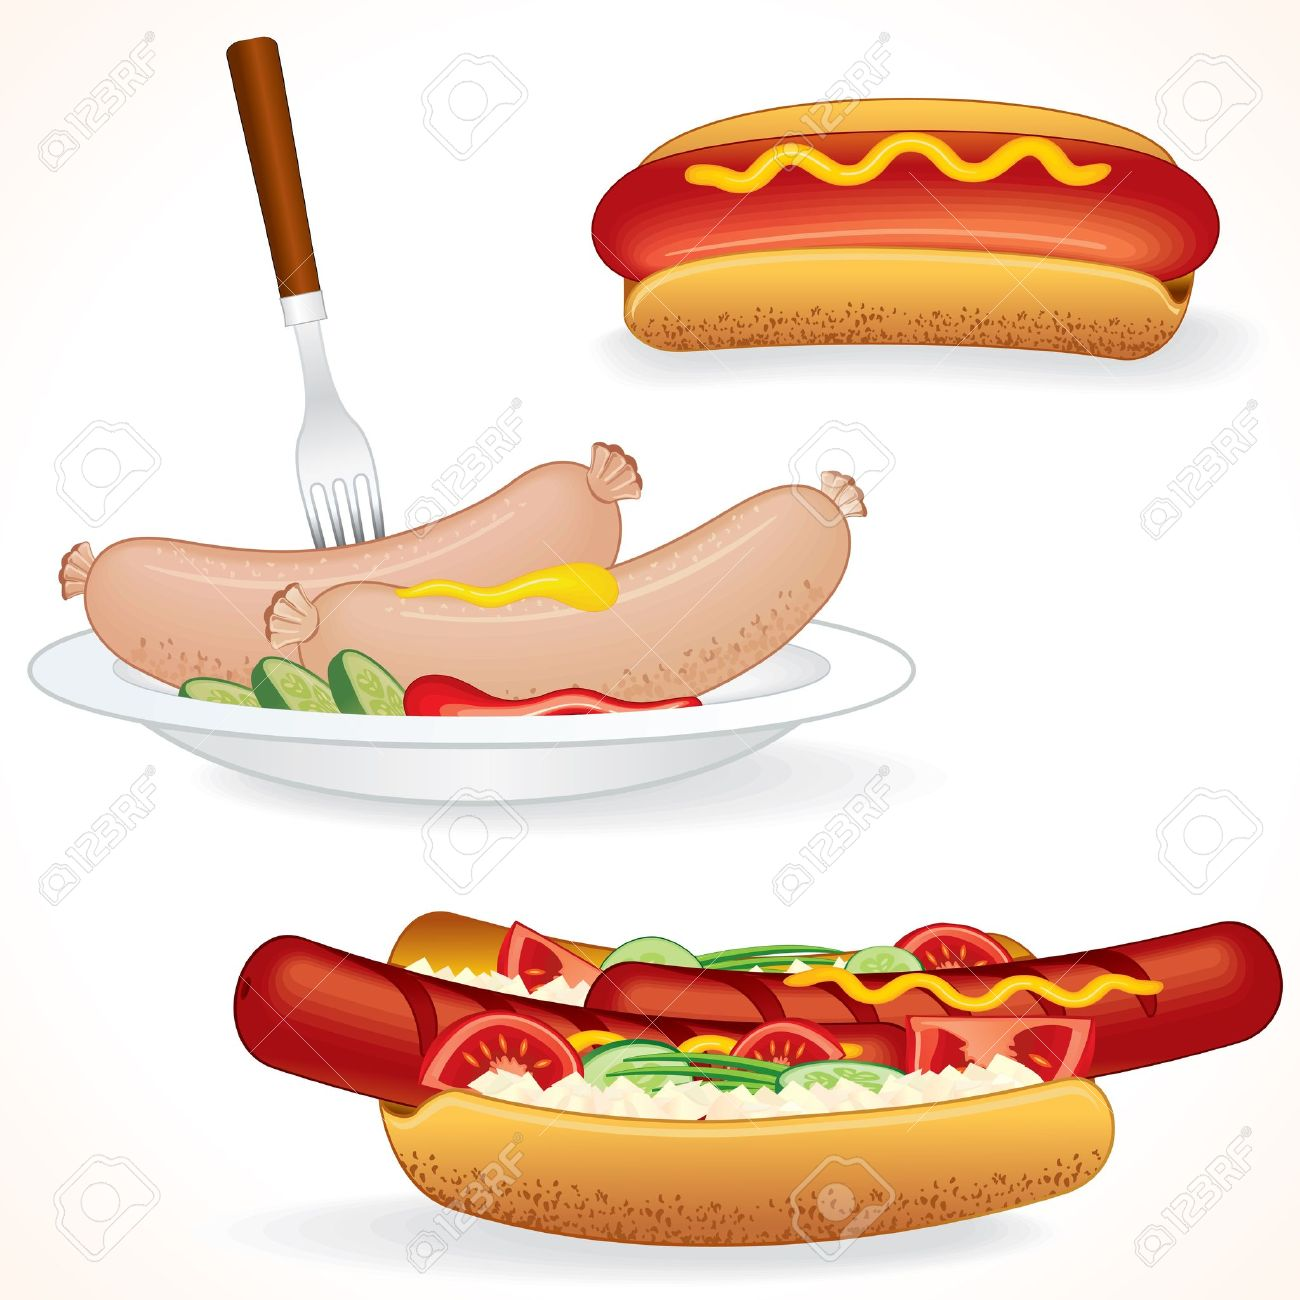 Hot Dog Variations. Sausages and other vector illustrations of Junk Food. Stock Vector - 10301486